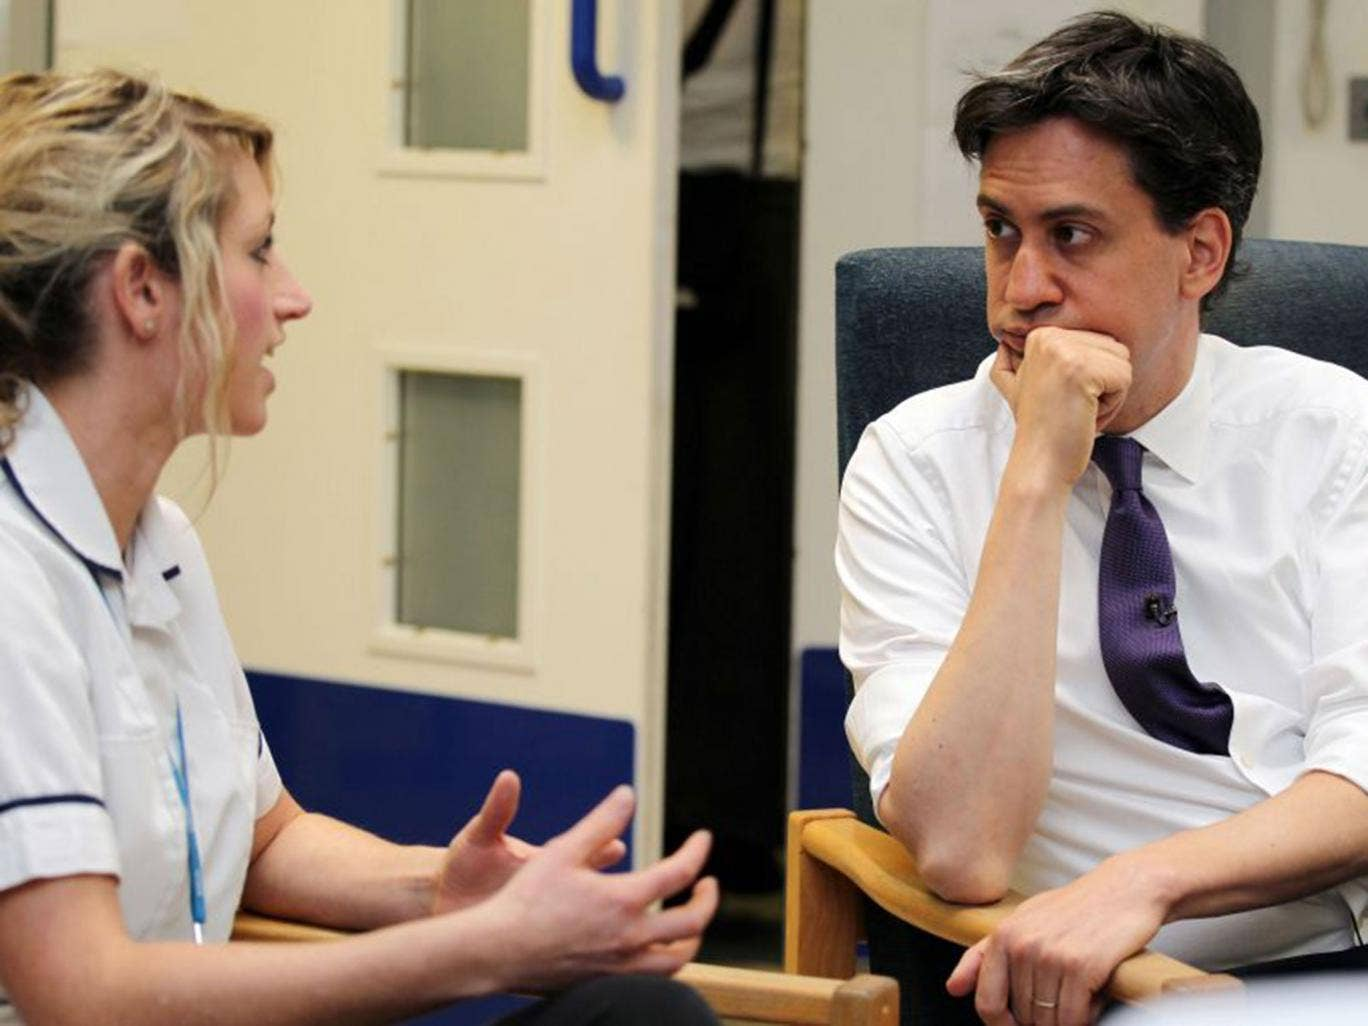 Ed Miliband paid a visit to Leighton Hospital in Crewe to speak with the staff about the NHS